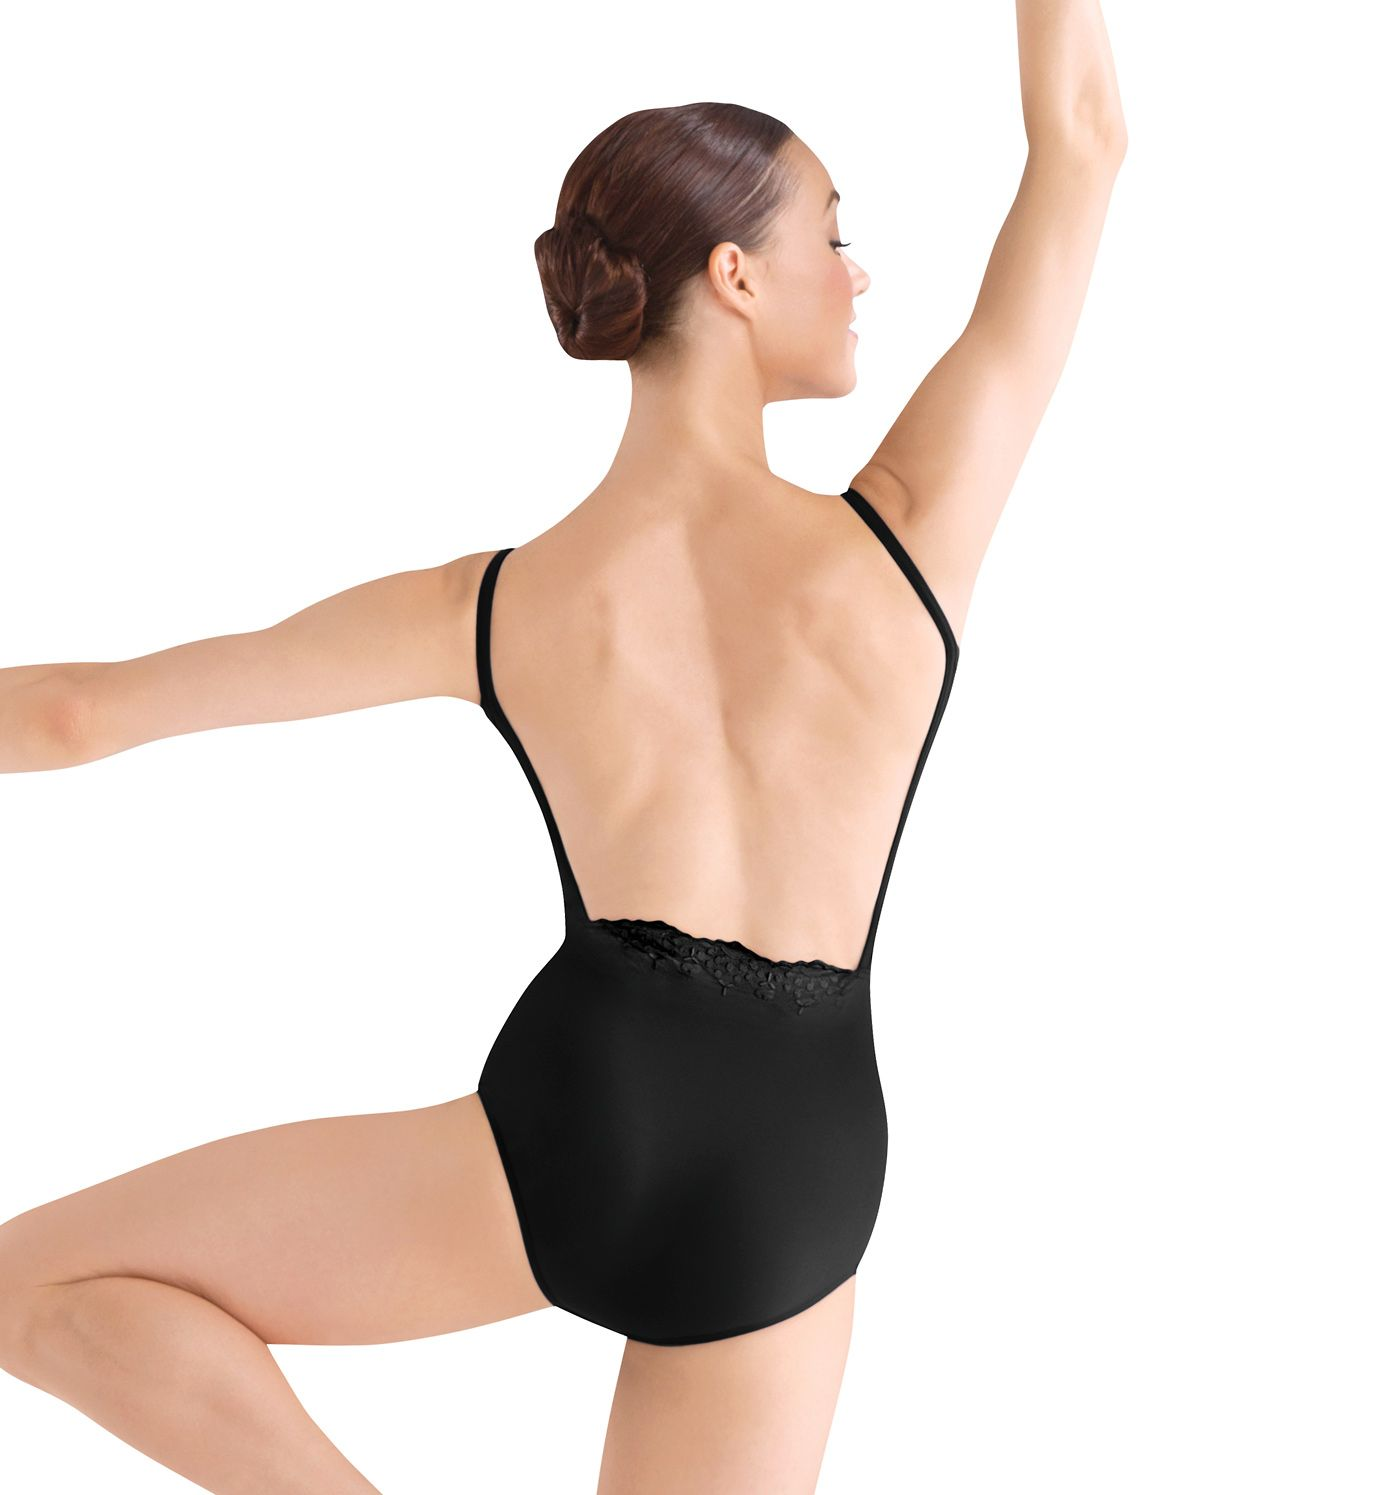 Bloch **camisole** Anglaise leo. Not really ever in stock but looks so good with the low back! wish it was mine